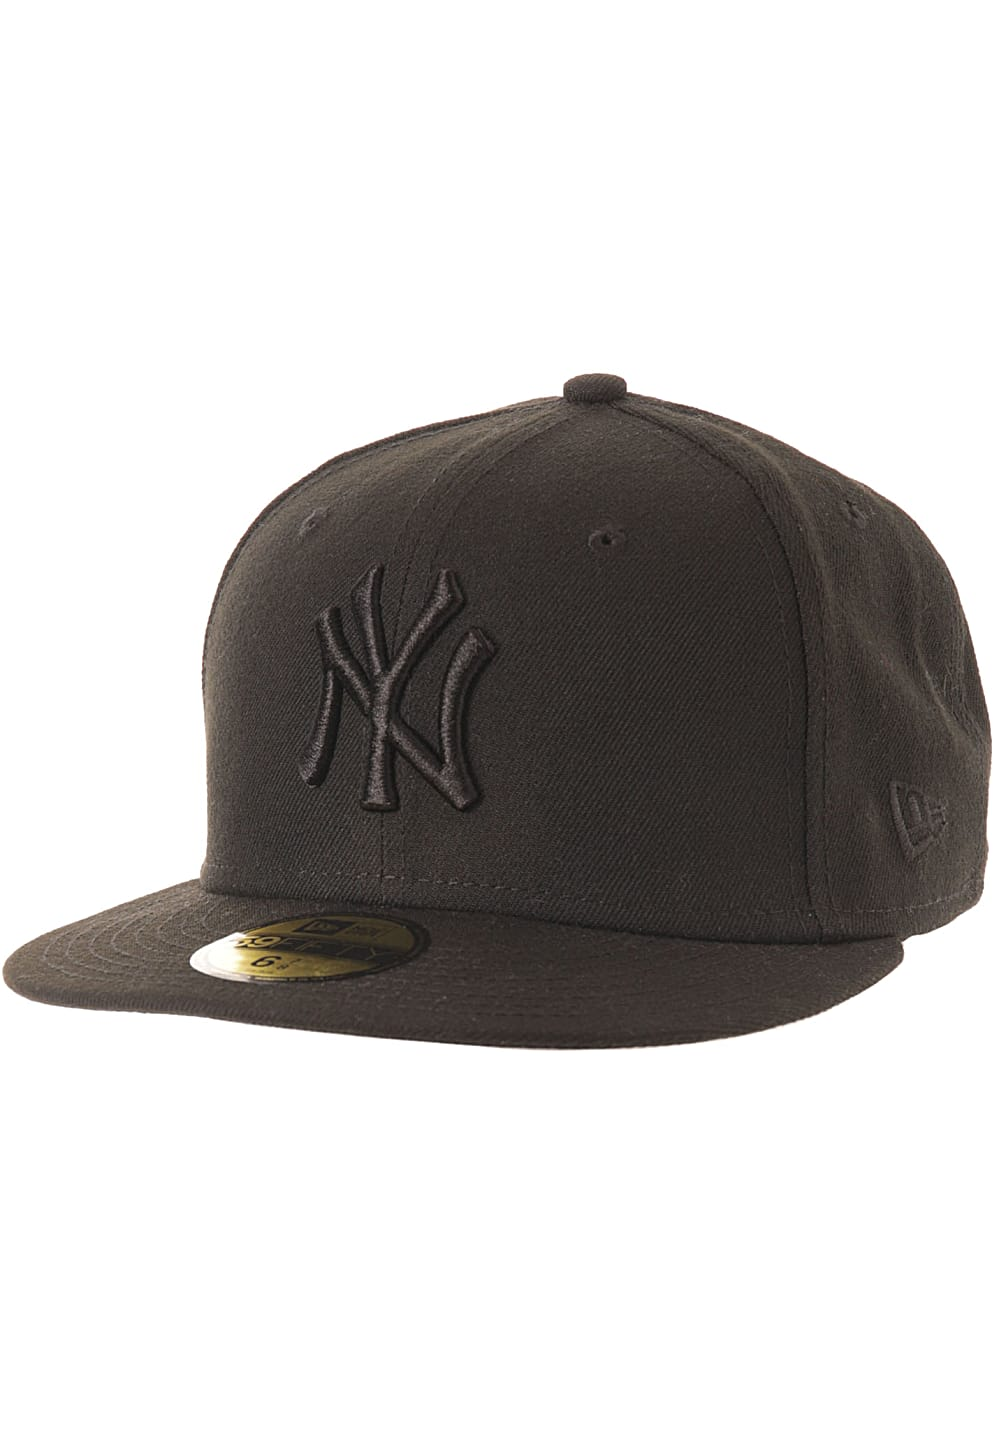 NEW Era 59Fifty New York Yankees - Fitted Cap - Black - Planet Sports 8345d1d2ac2